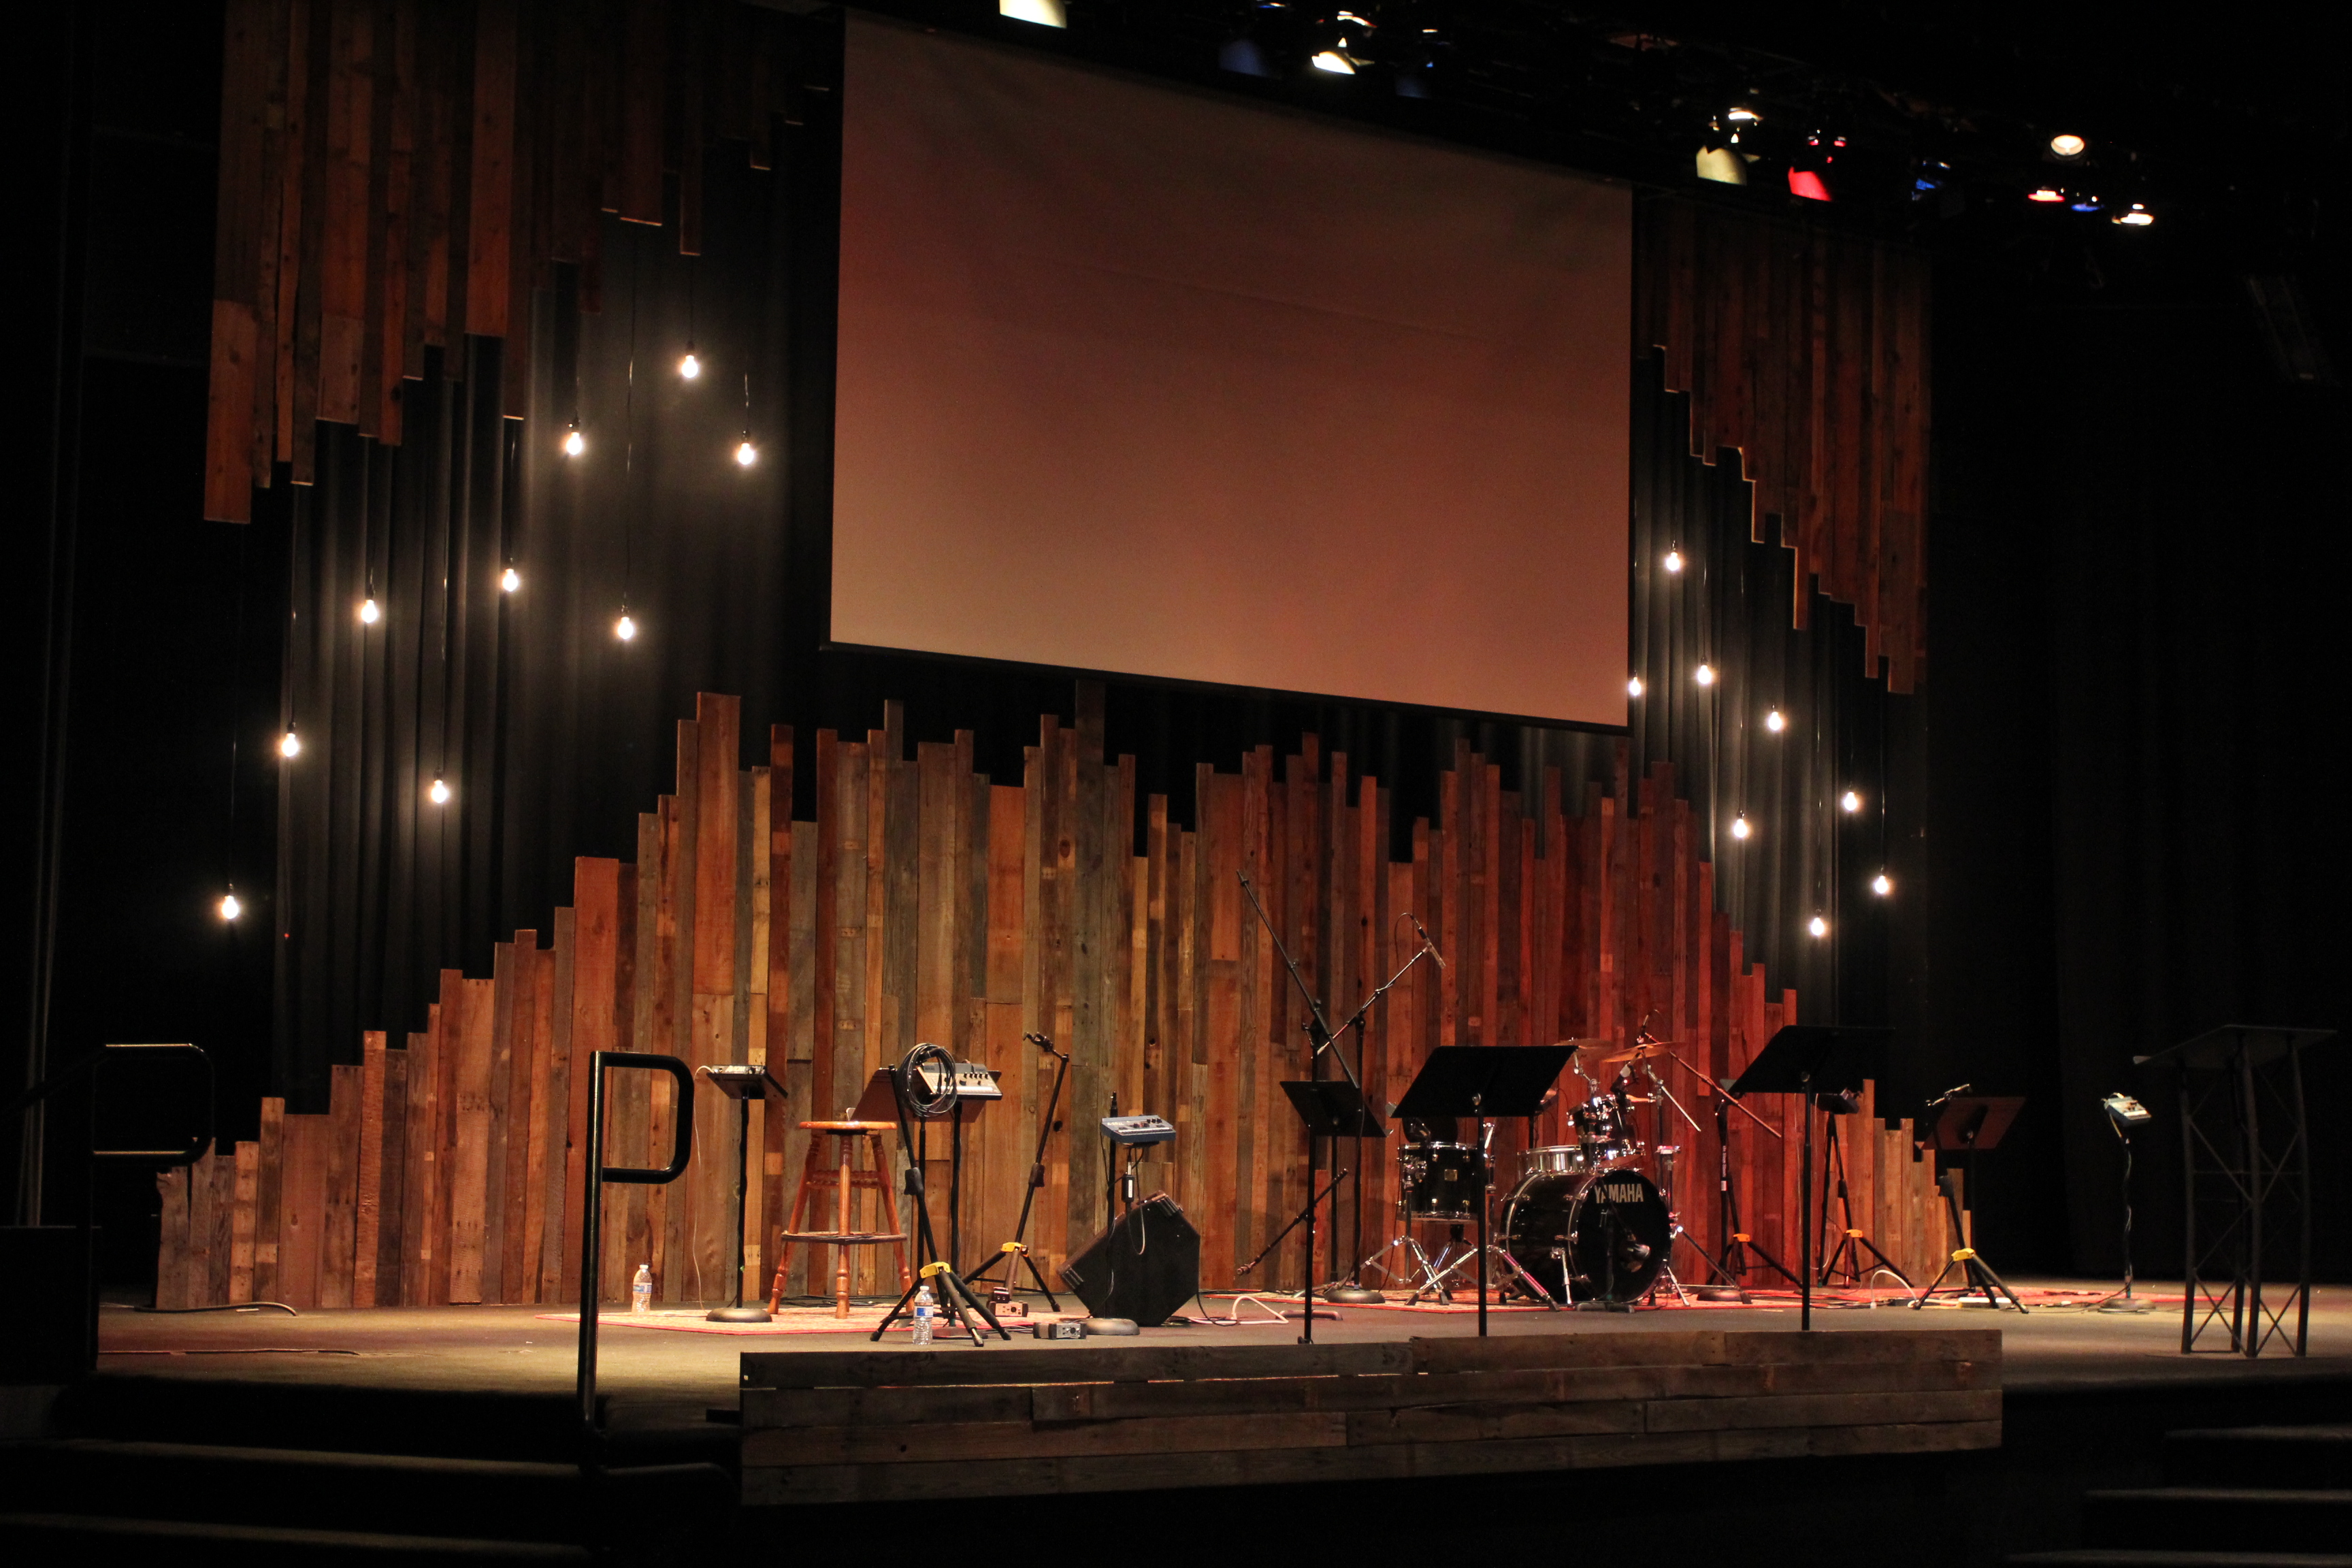 Pallet Gaps Church Stage Design Ideas